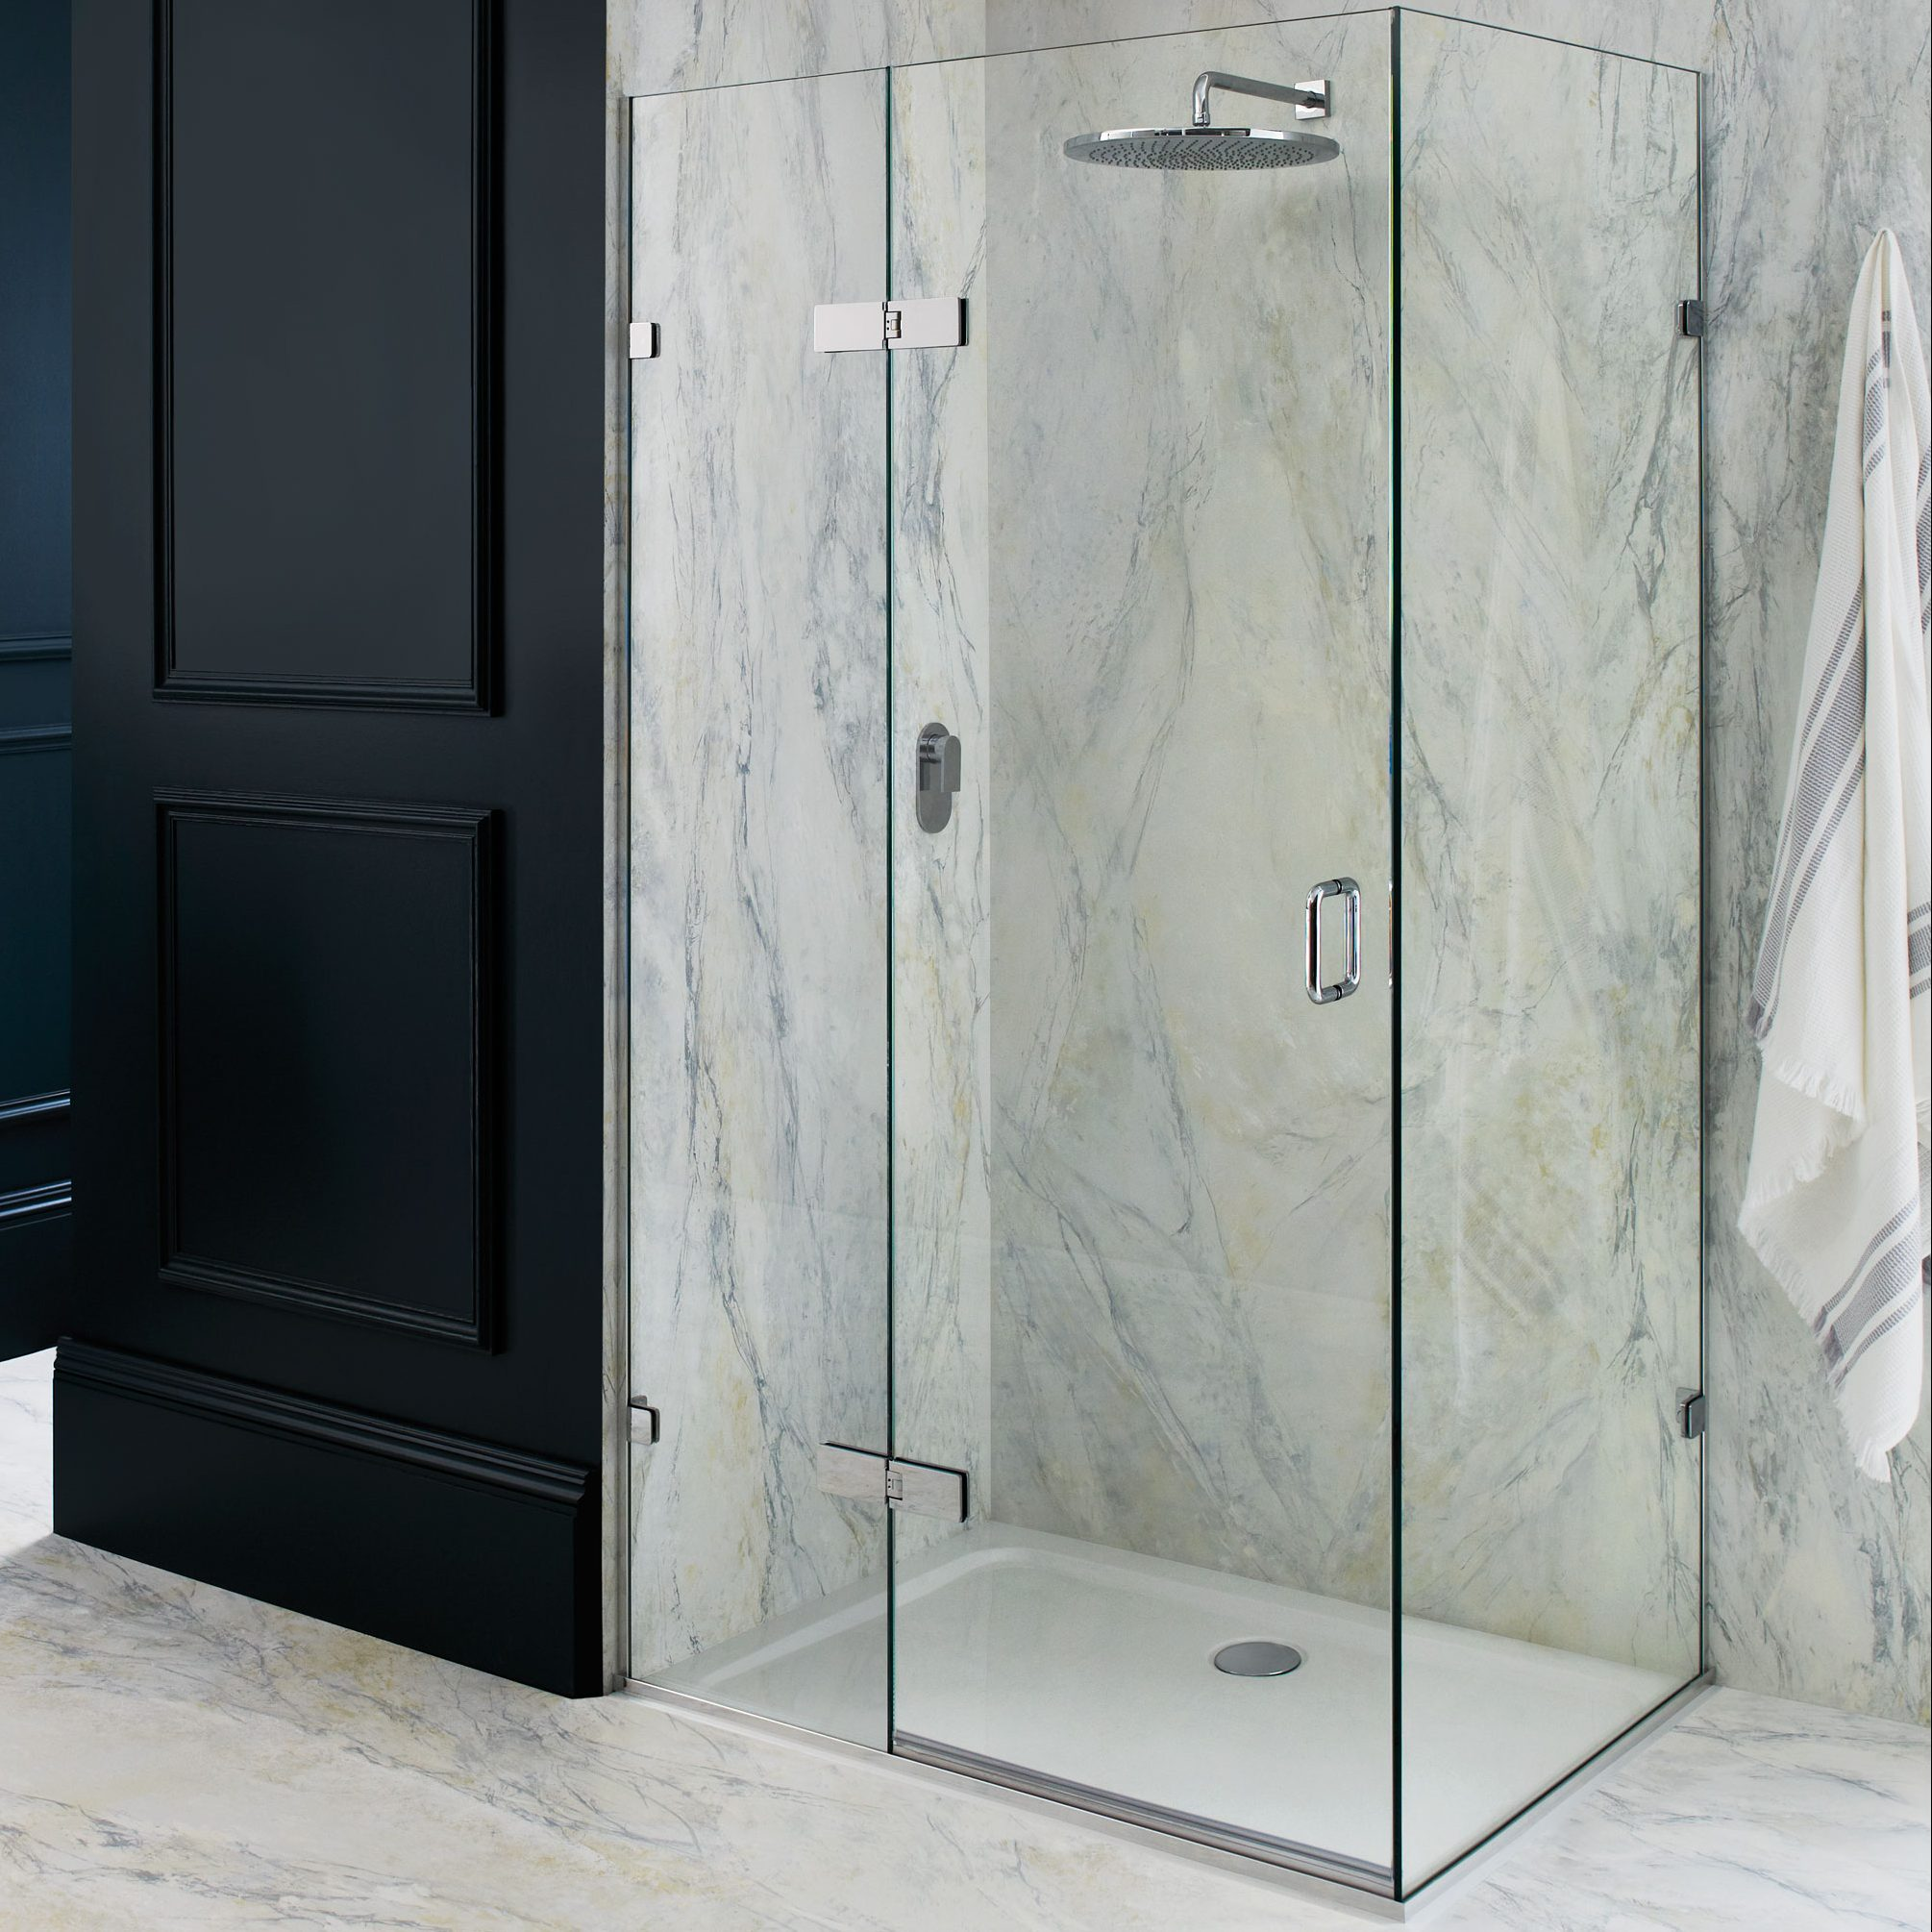 Rectangle Corner Shower with Large Glass Doors